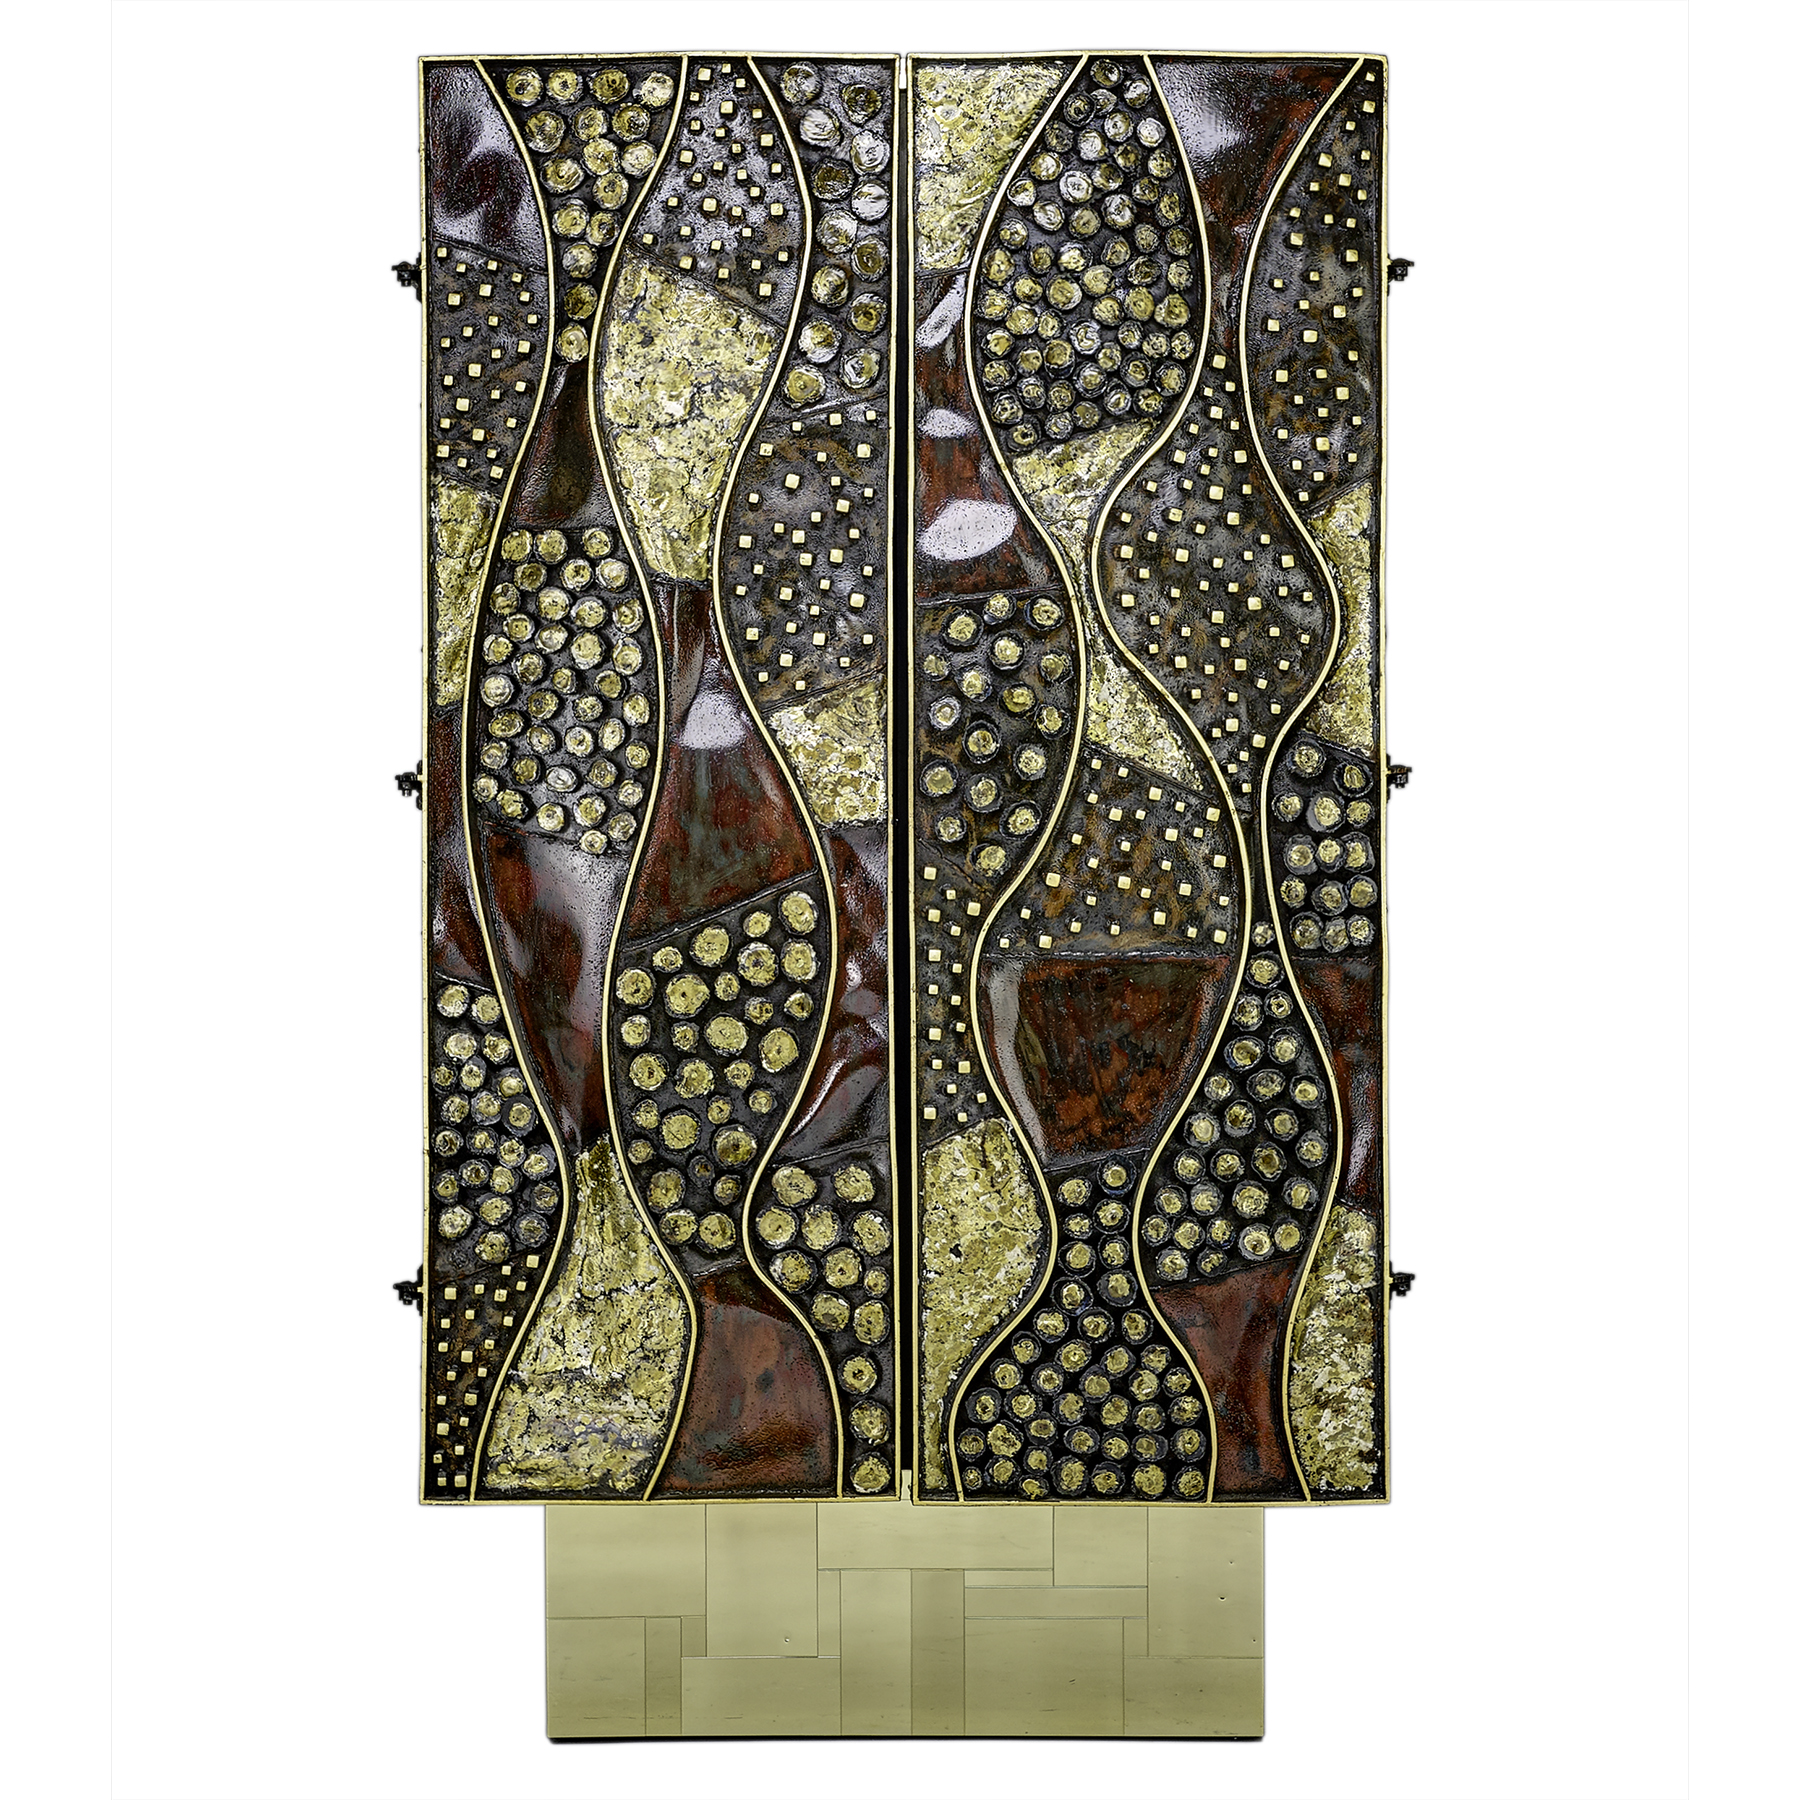 A unique vertical cabinet made by Paul Evans, featuring steel, 23 karat gold leaf, brass, and enameled finish. It stands just over seven feet tall, about four feet wide, and about 18 inches deep. It sold for $382,000 against a $140,000 to $160,000 estimate at Rago Auctions in January 2017, an auction record for Evans.